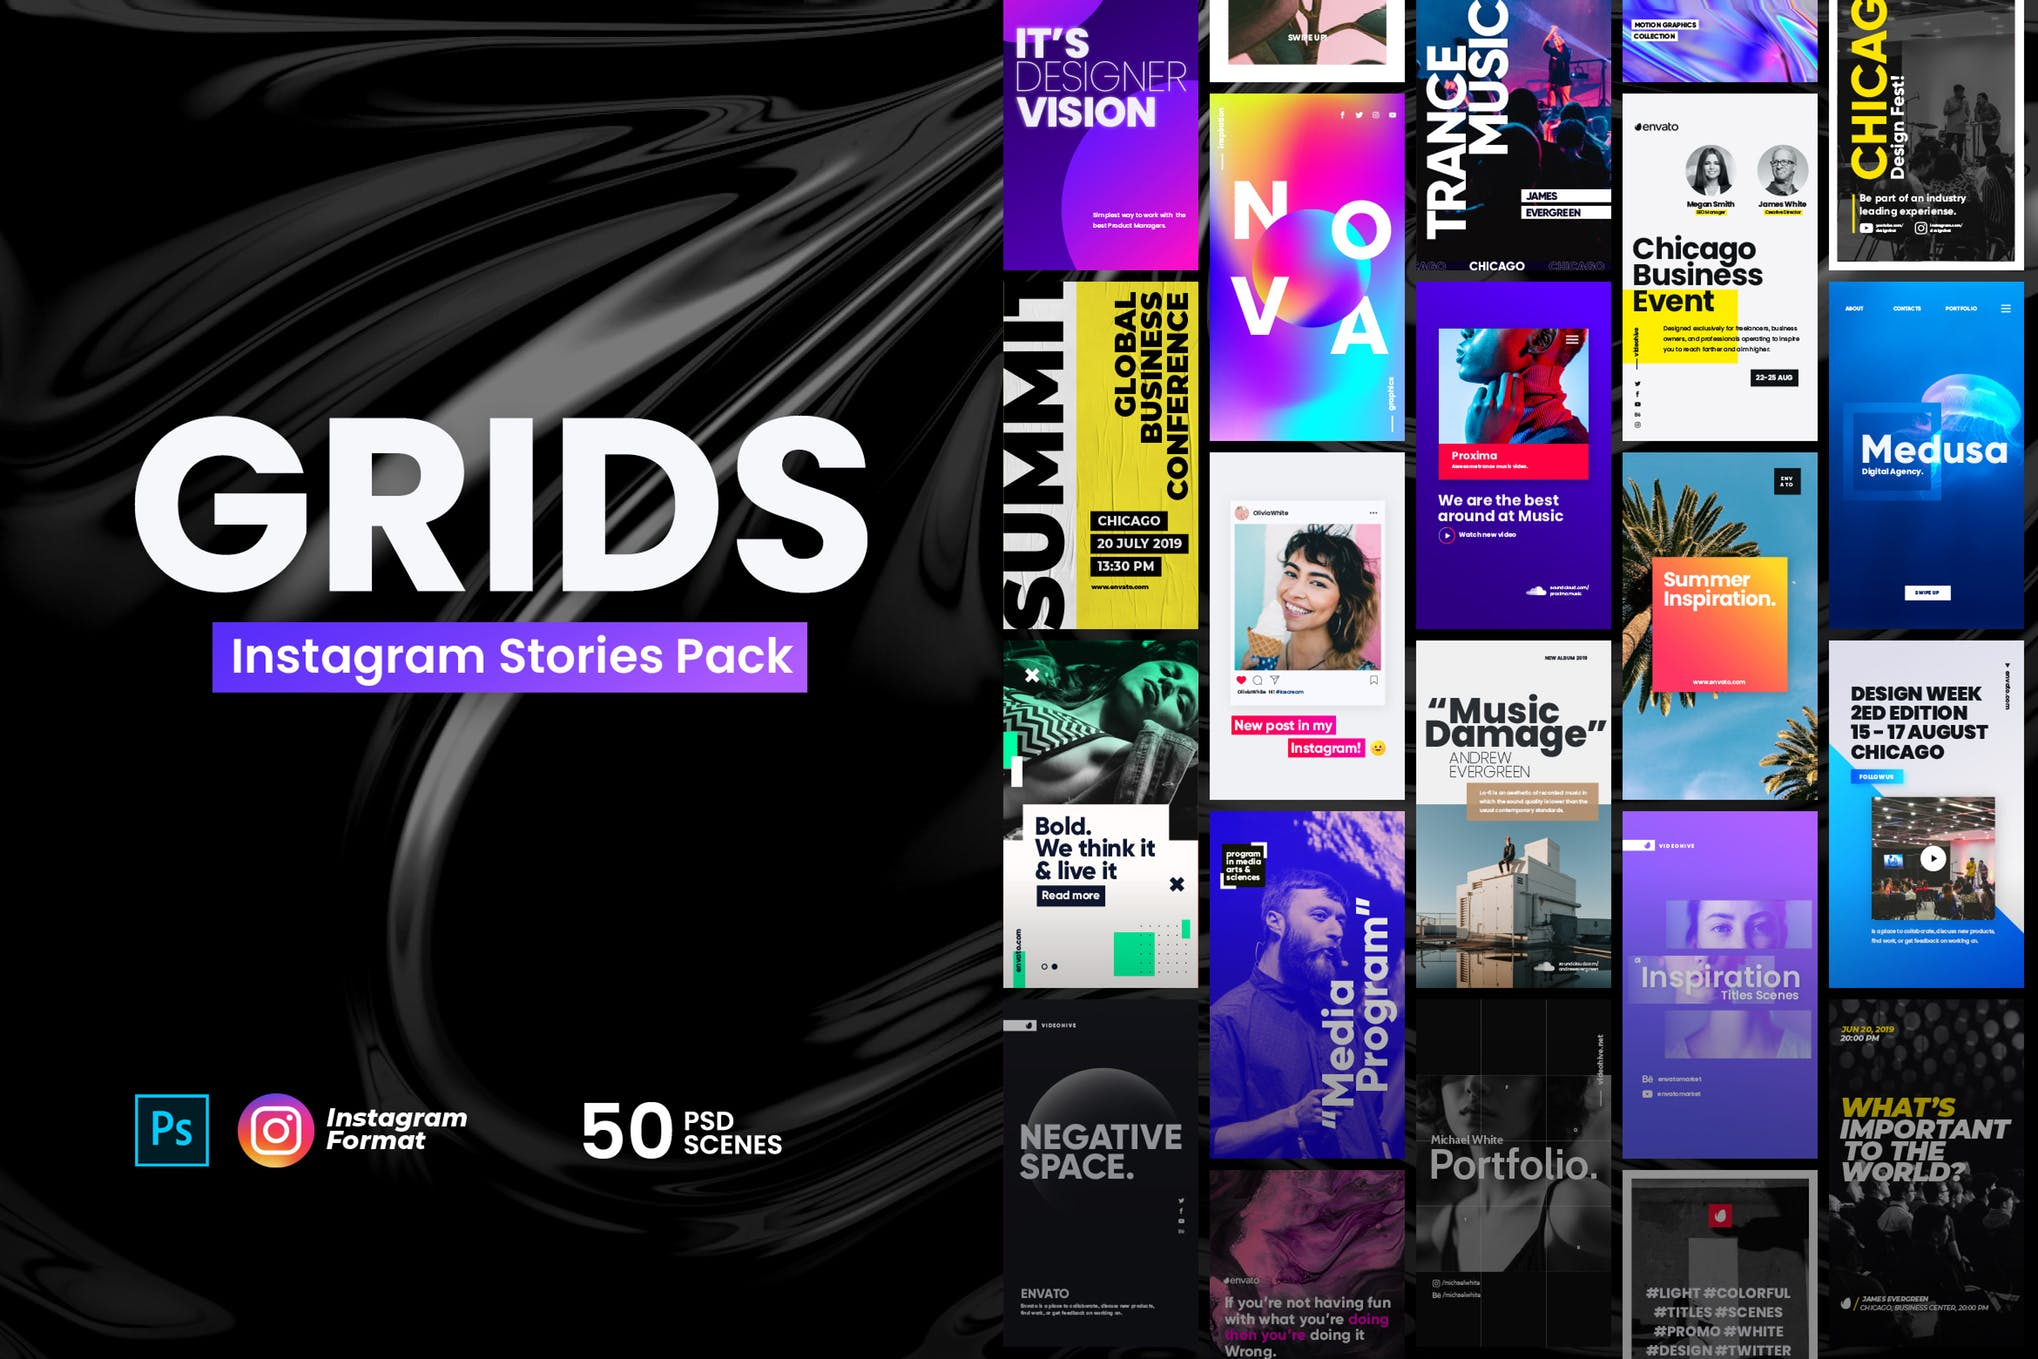 50 Instagram Stories Pack PSD Templates suitable for all social media promotions with FULL rights